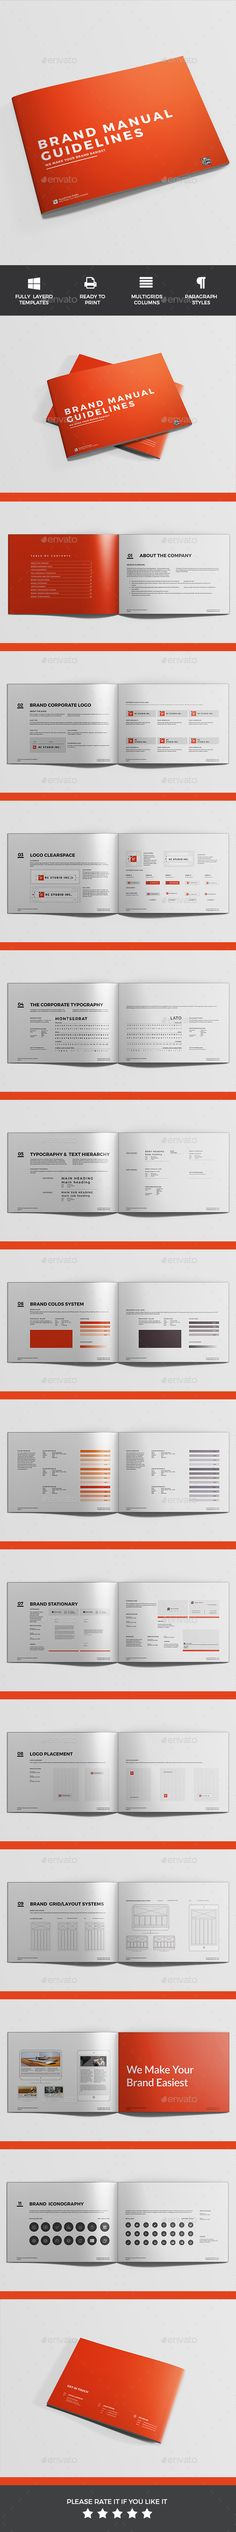 Brand Manual Template InDesign INDD #design Download http - it manual template